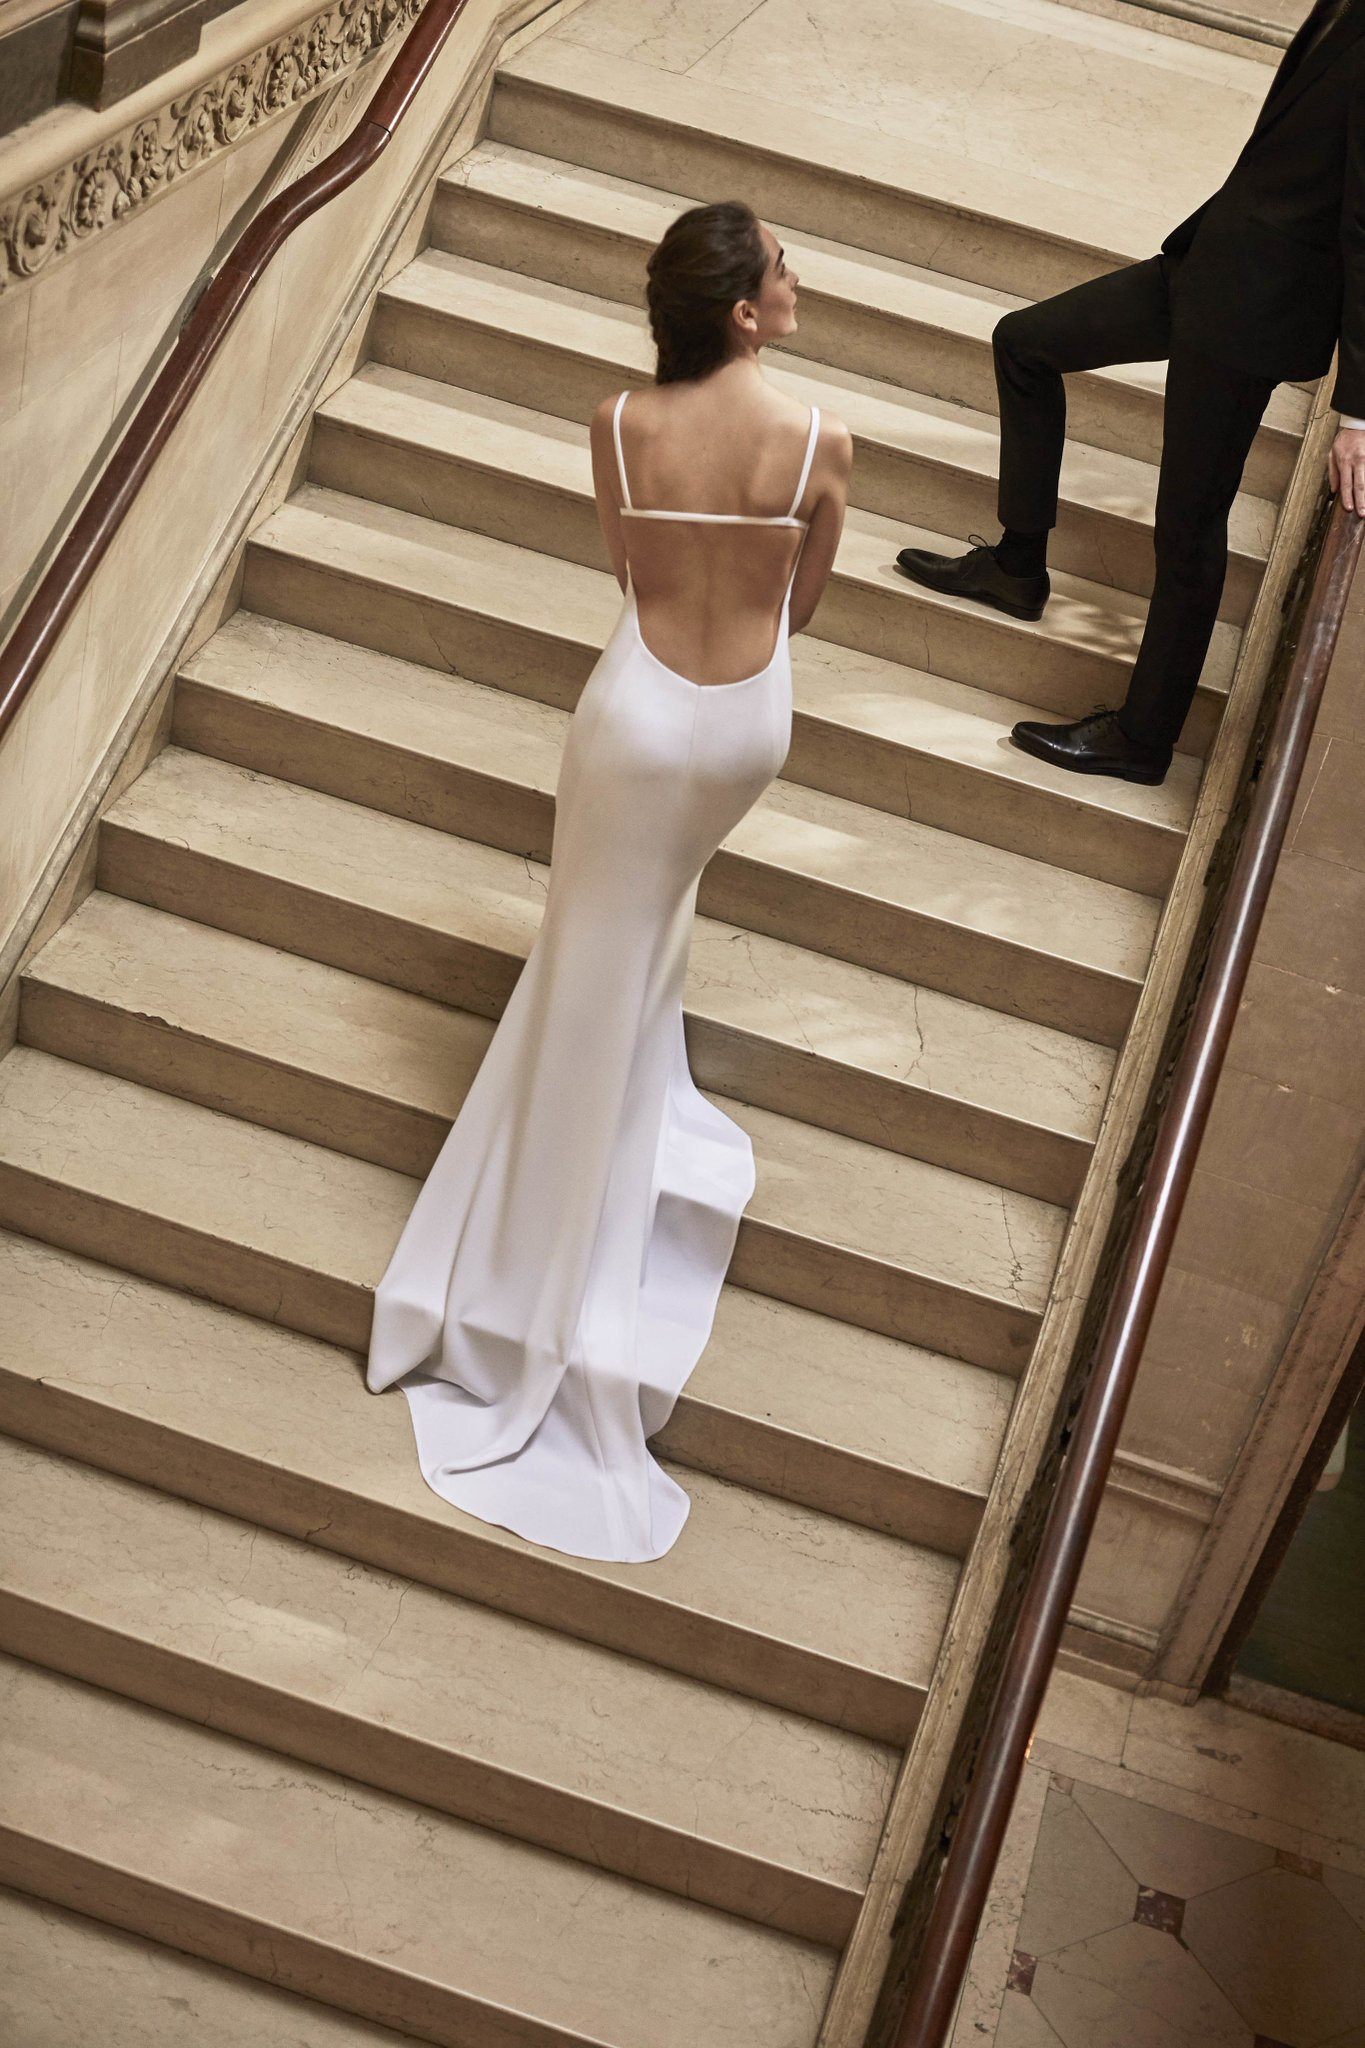 See what Carolina Herrera has in mind for Bridal Spring 2019: https://t.co/aFbaPFxPHI https://t.co/XulAEhxlrC